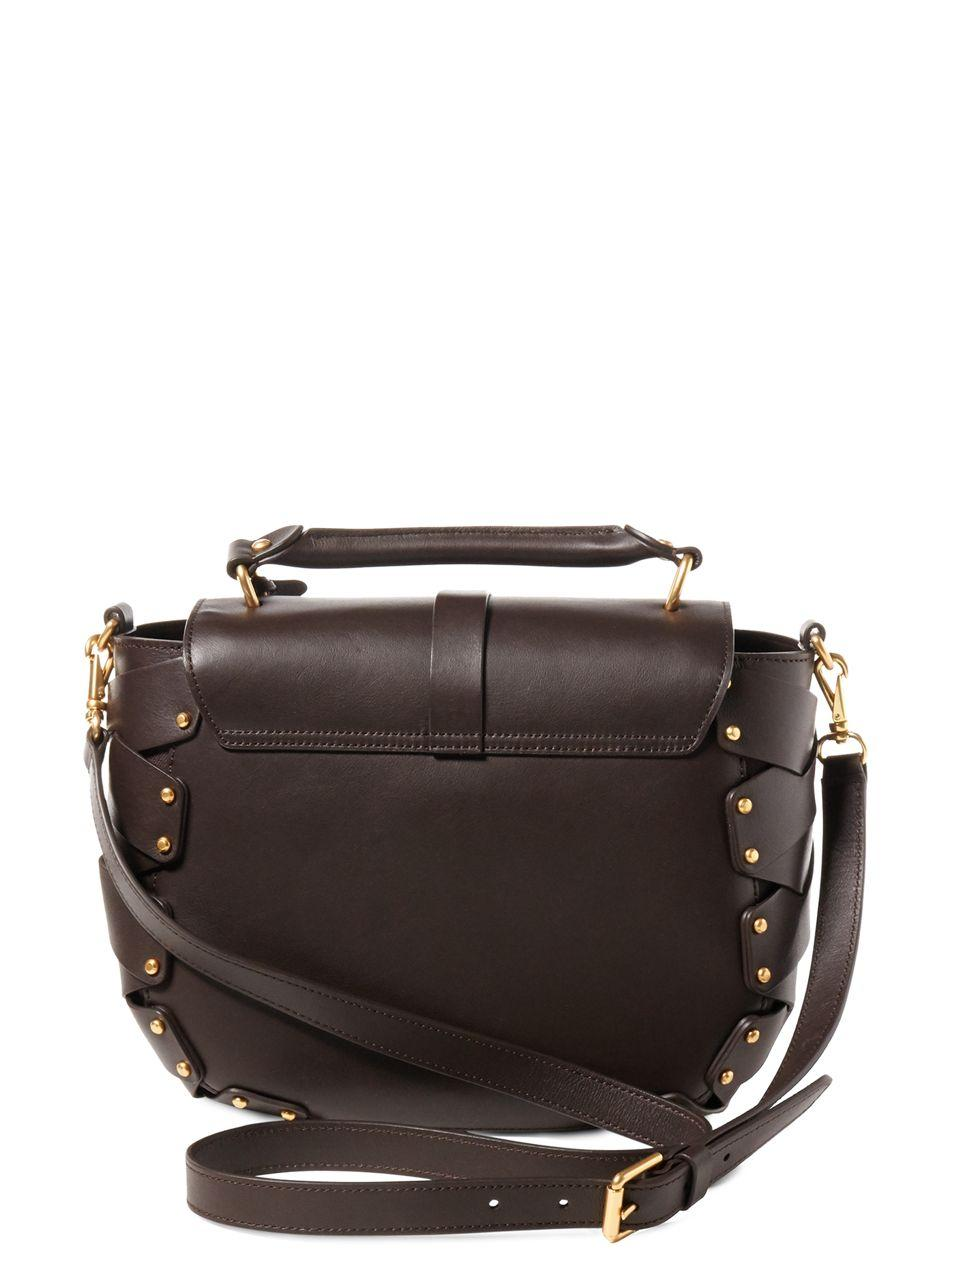 bc18e8998abe Lauren By Ralph Lauren Ludwick Collection Viana Saddle Bag in Brown ...